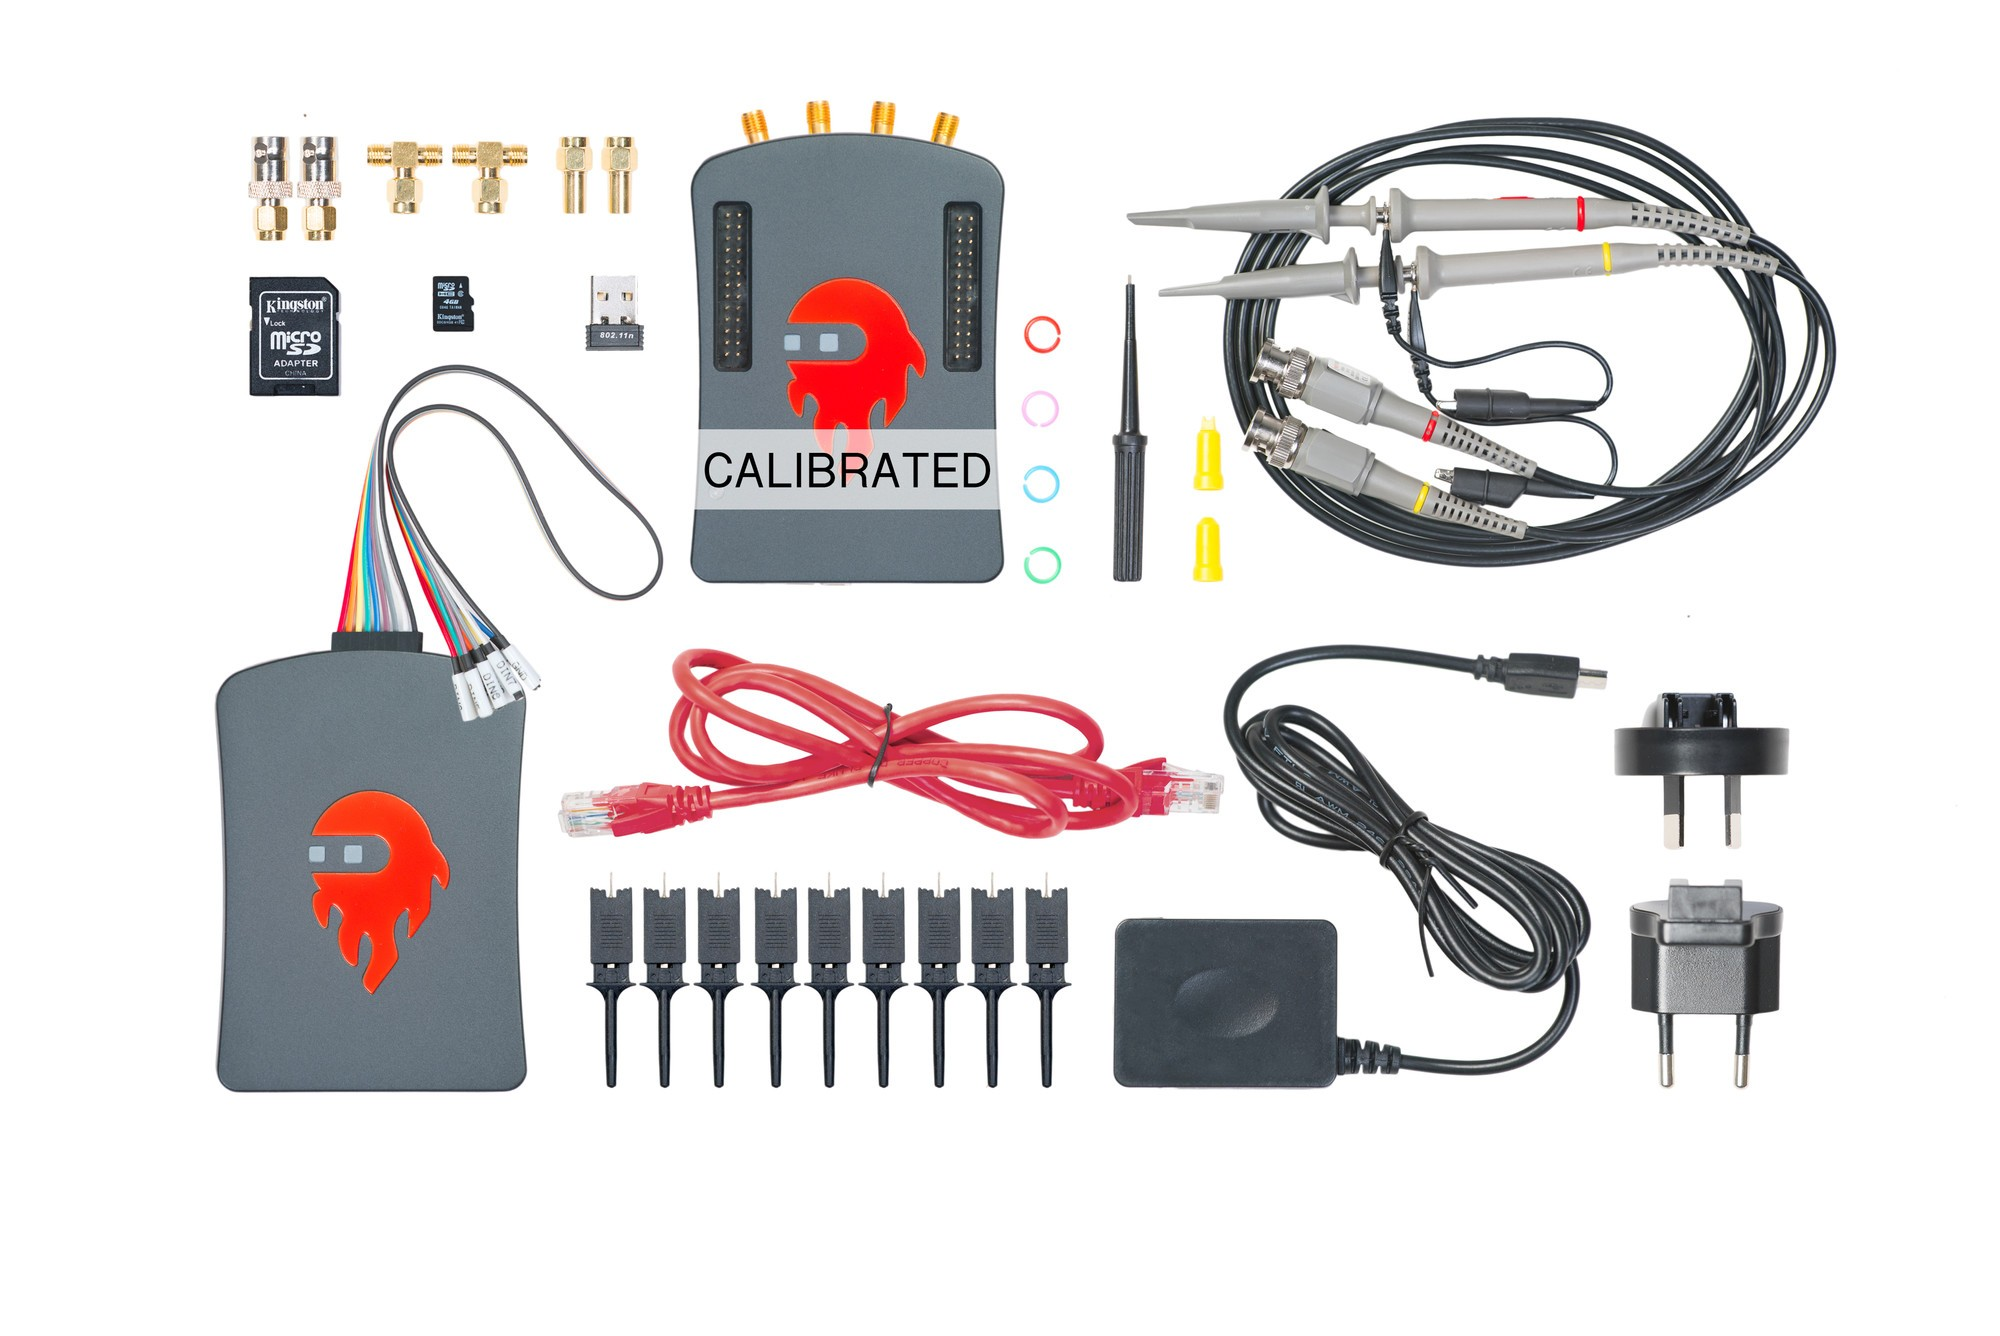 Red Pitaya V1.1 (Calibrated Diagnostic Kit)